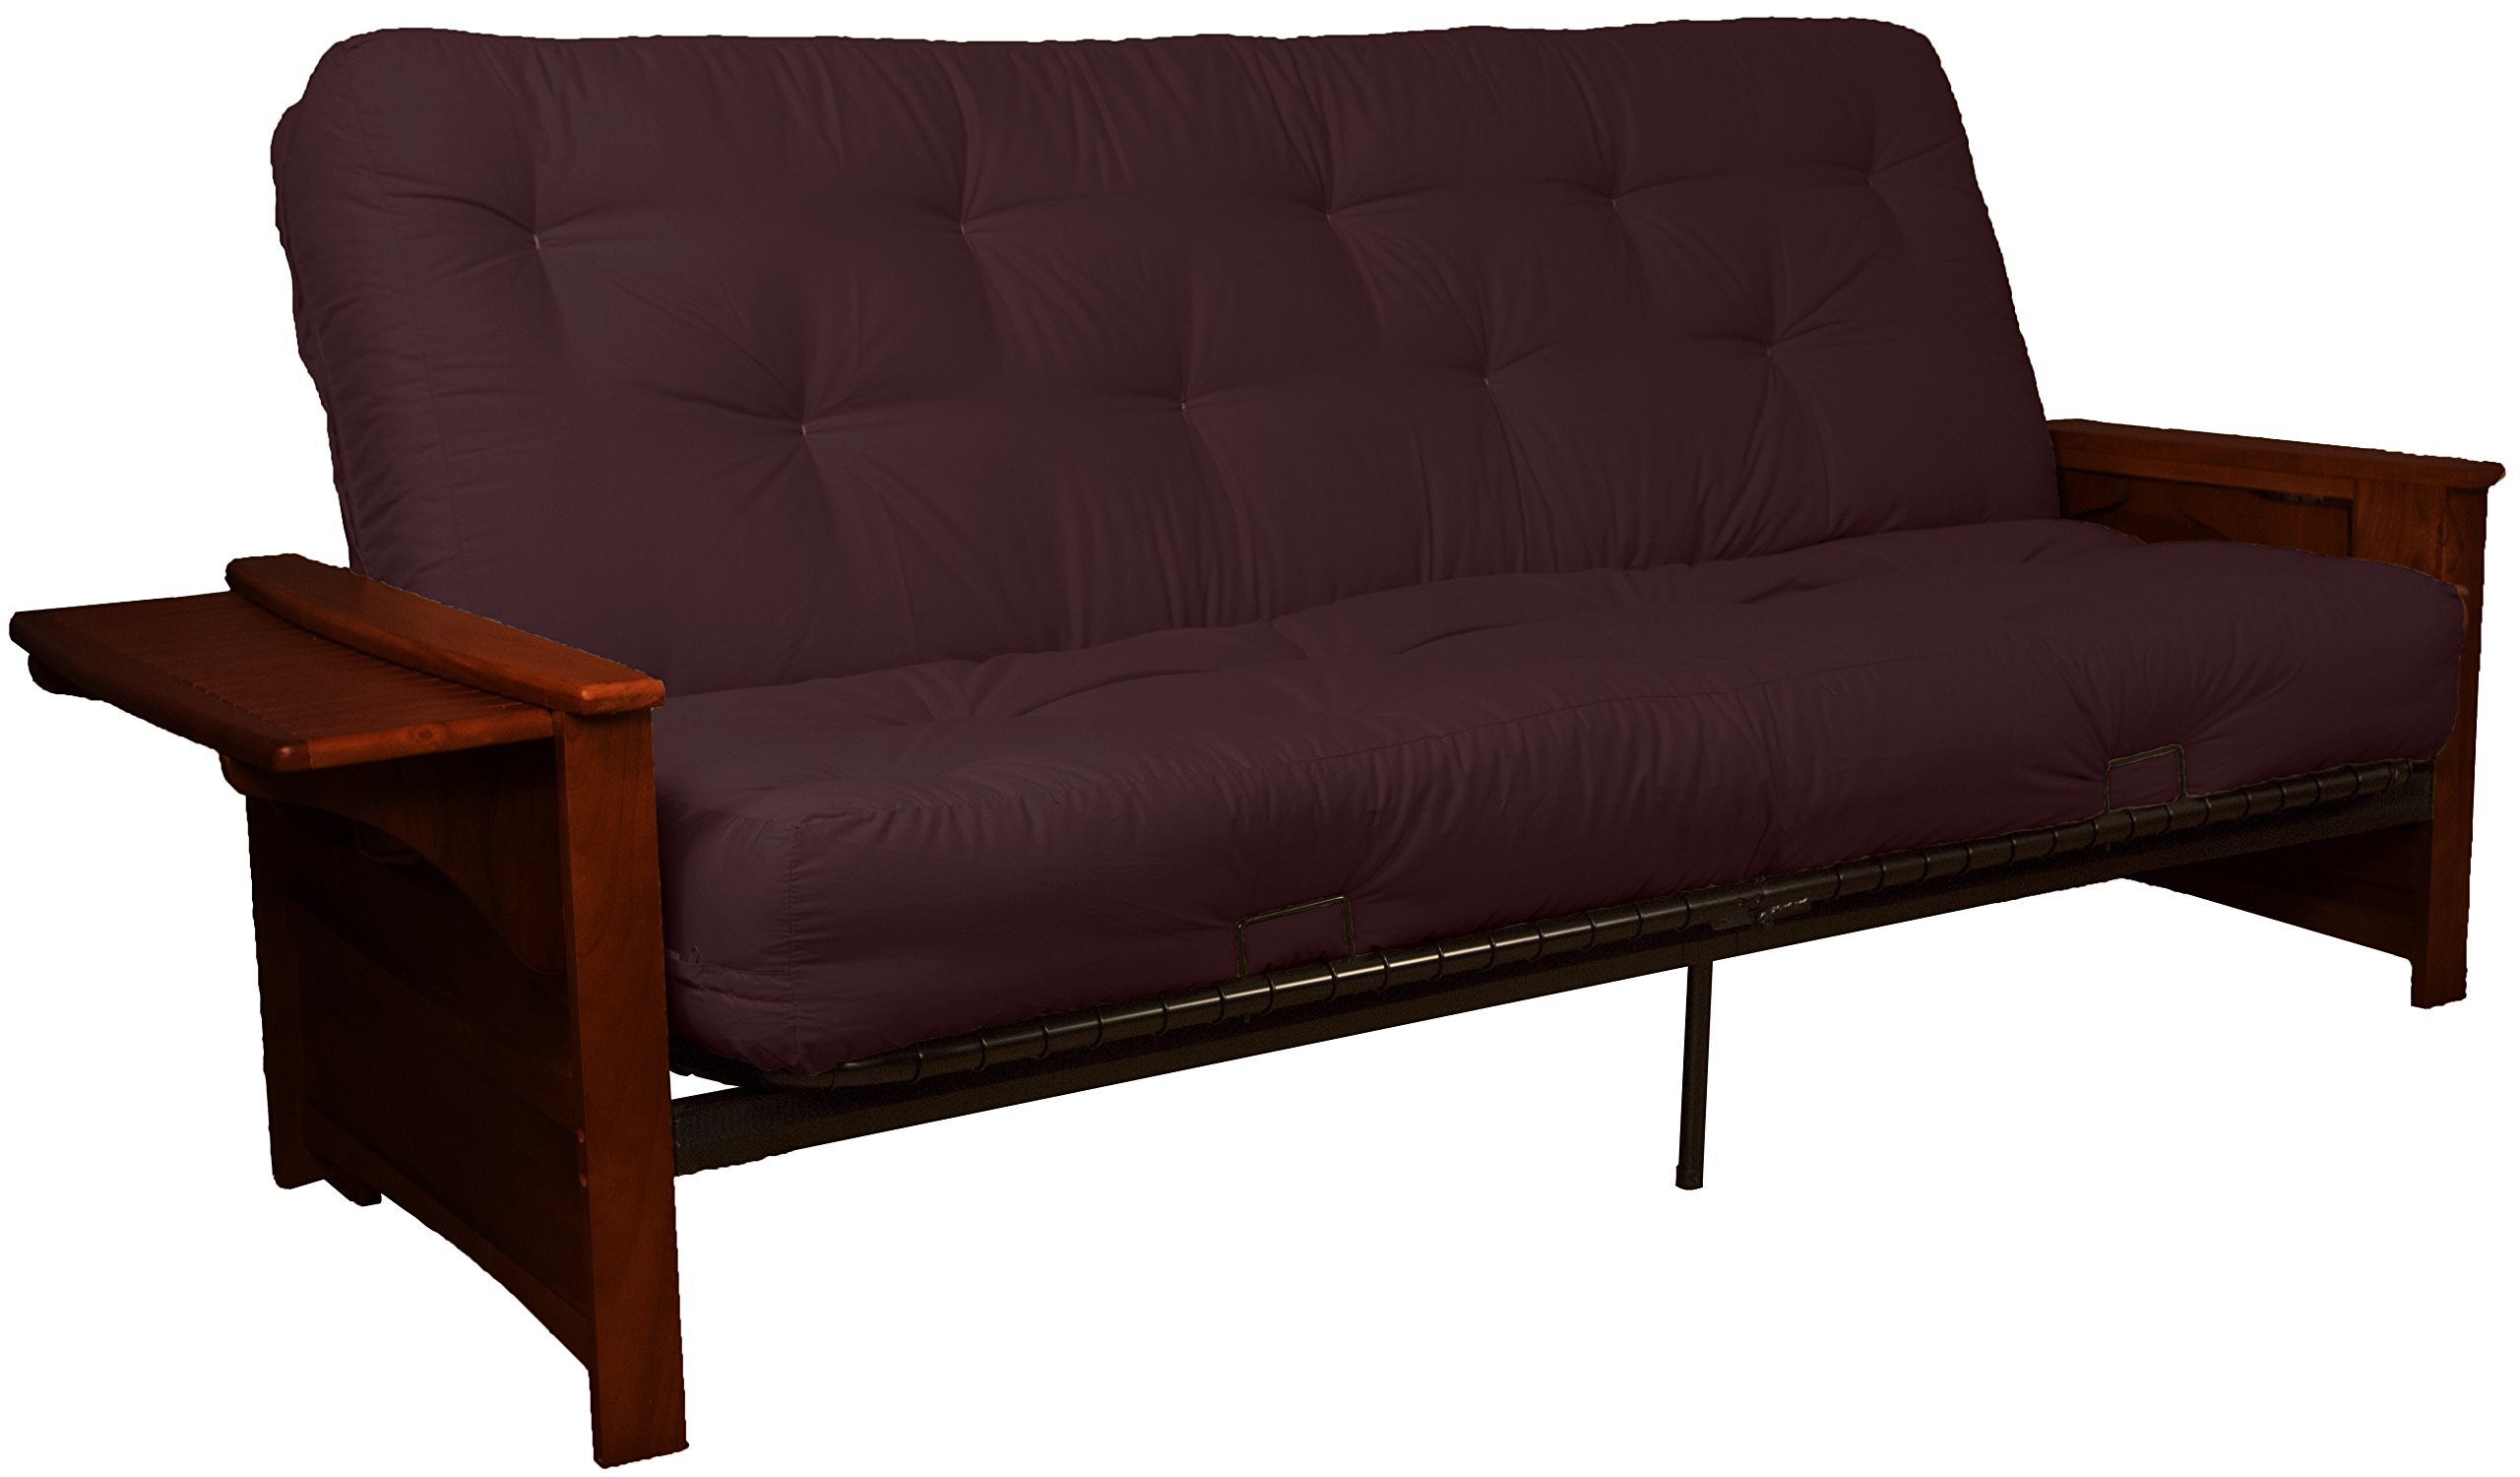 Valet Attached End Table Style True 8-inch Loft Cotton/Foam Futon Sofa Sleeper Bed, Full-size, Mahogany Arm Finish, Twill Burgundy Upholstery